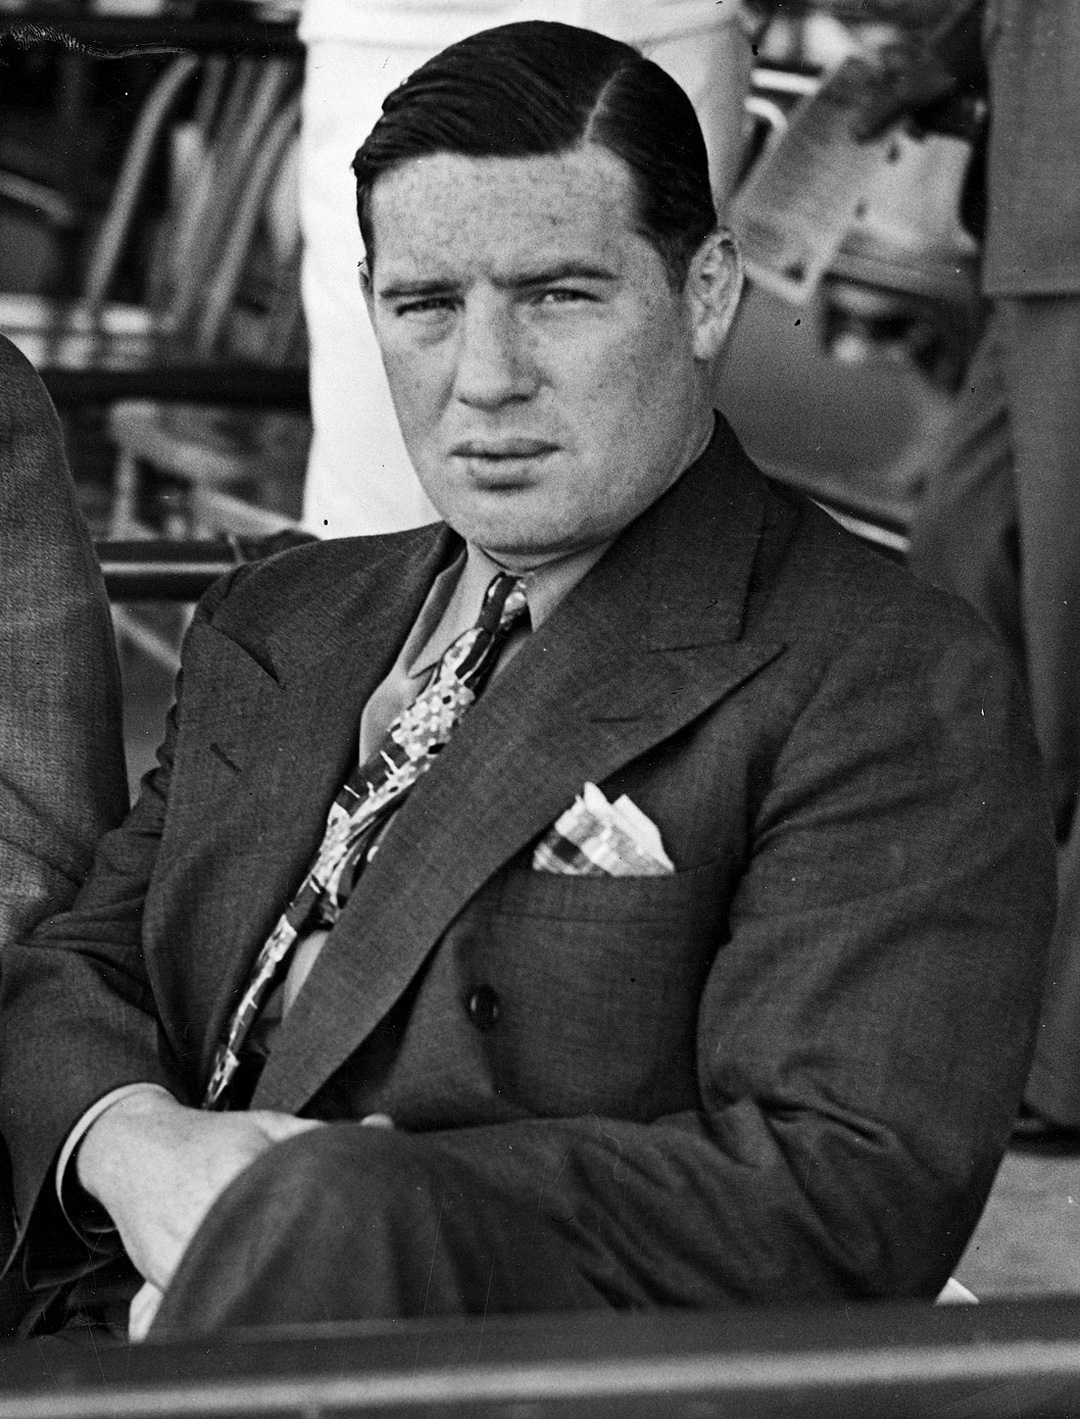 Rooney at the track in an undated picture.